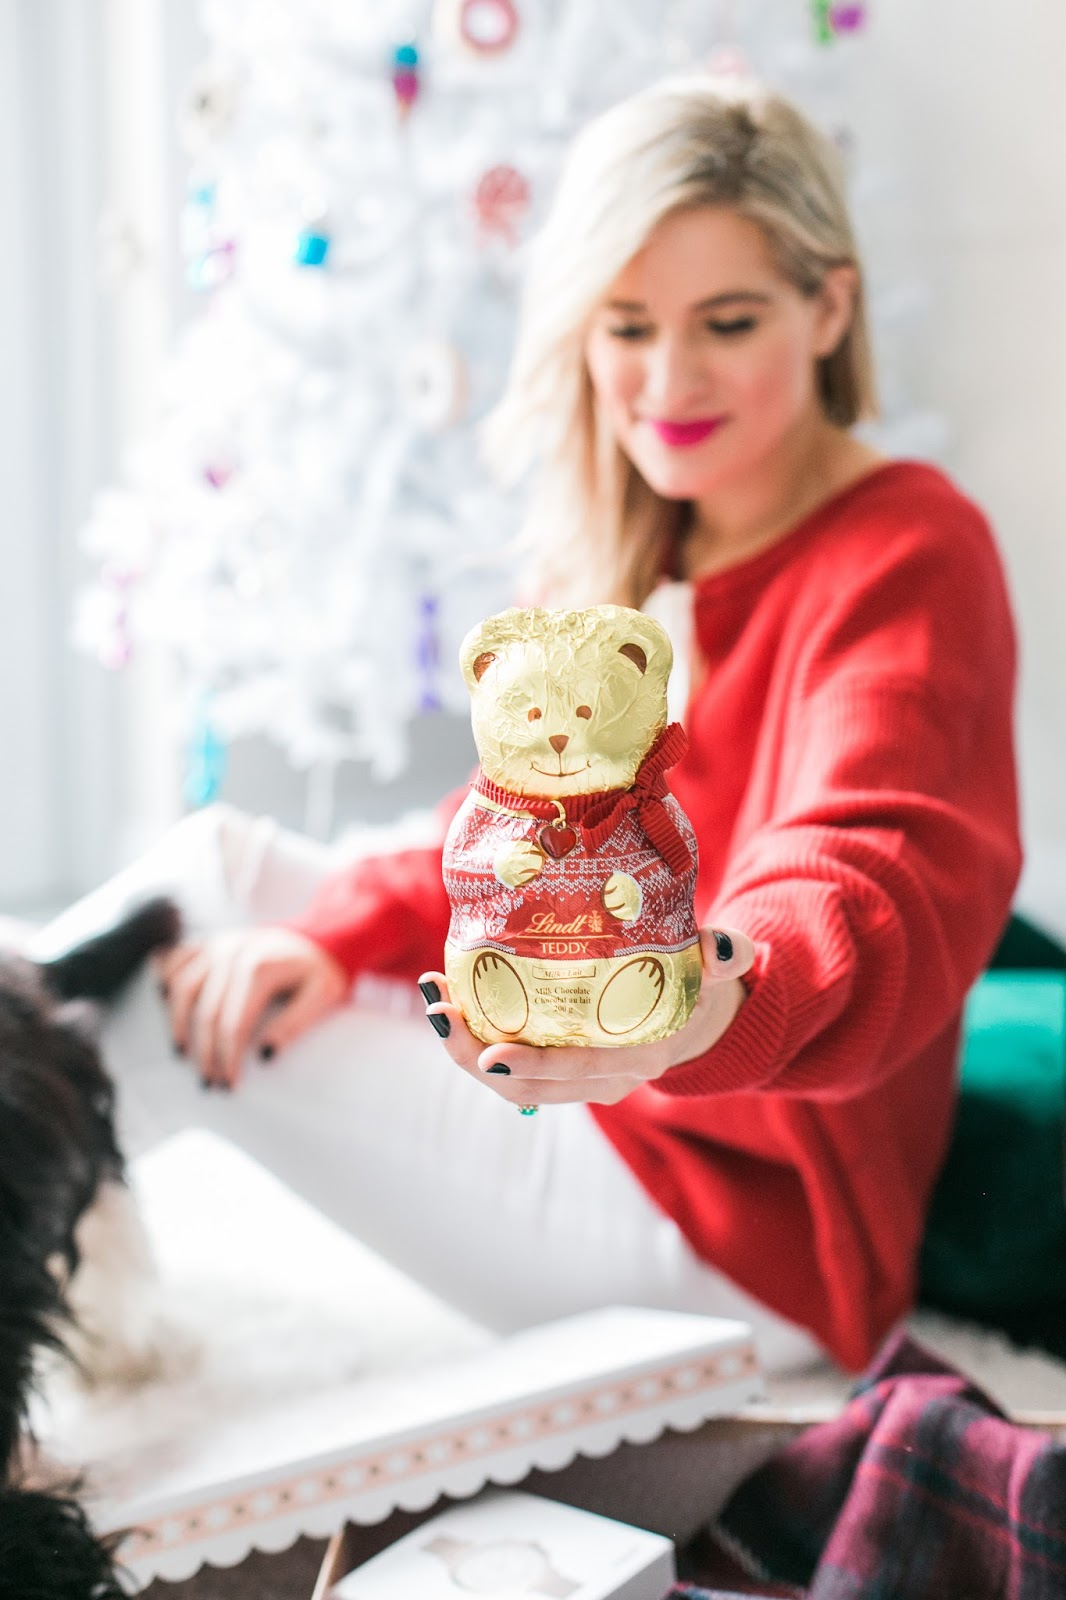 Bijuleni - Holiday Gift Guide For Her With Holt Renfrew Centre - Cavalier King Charles Spaniel puppy with chocolate bear